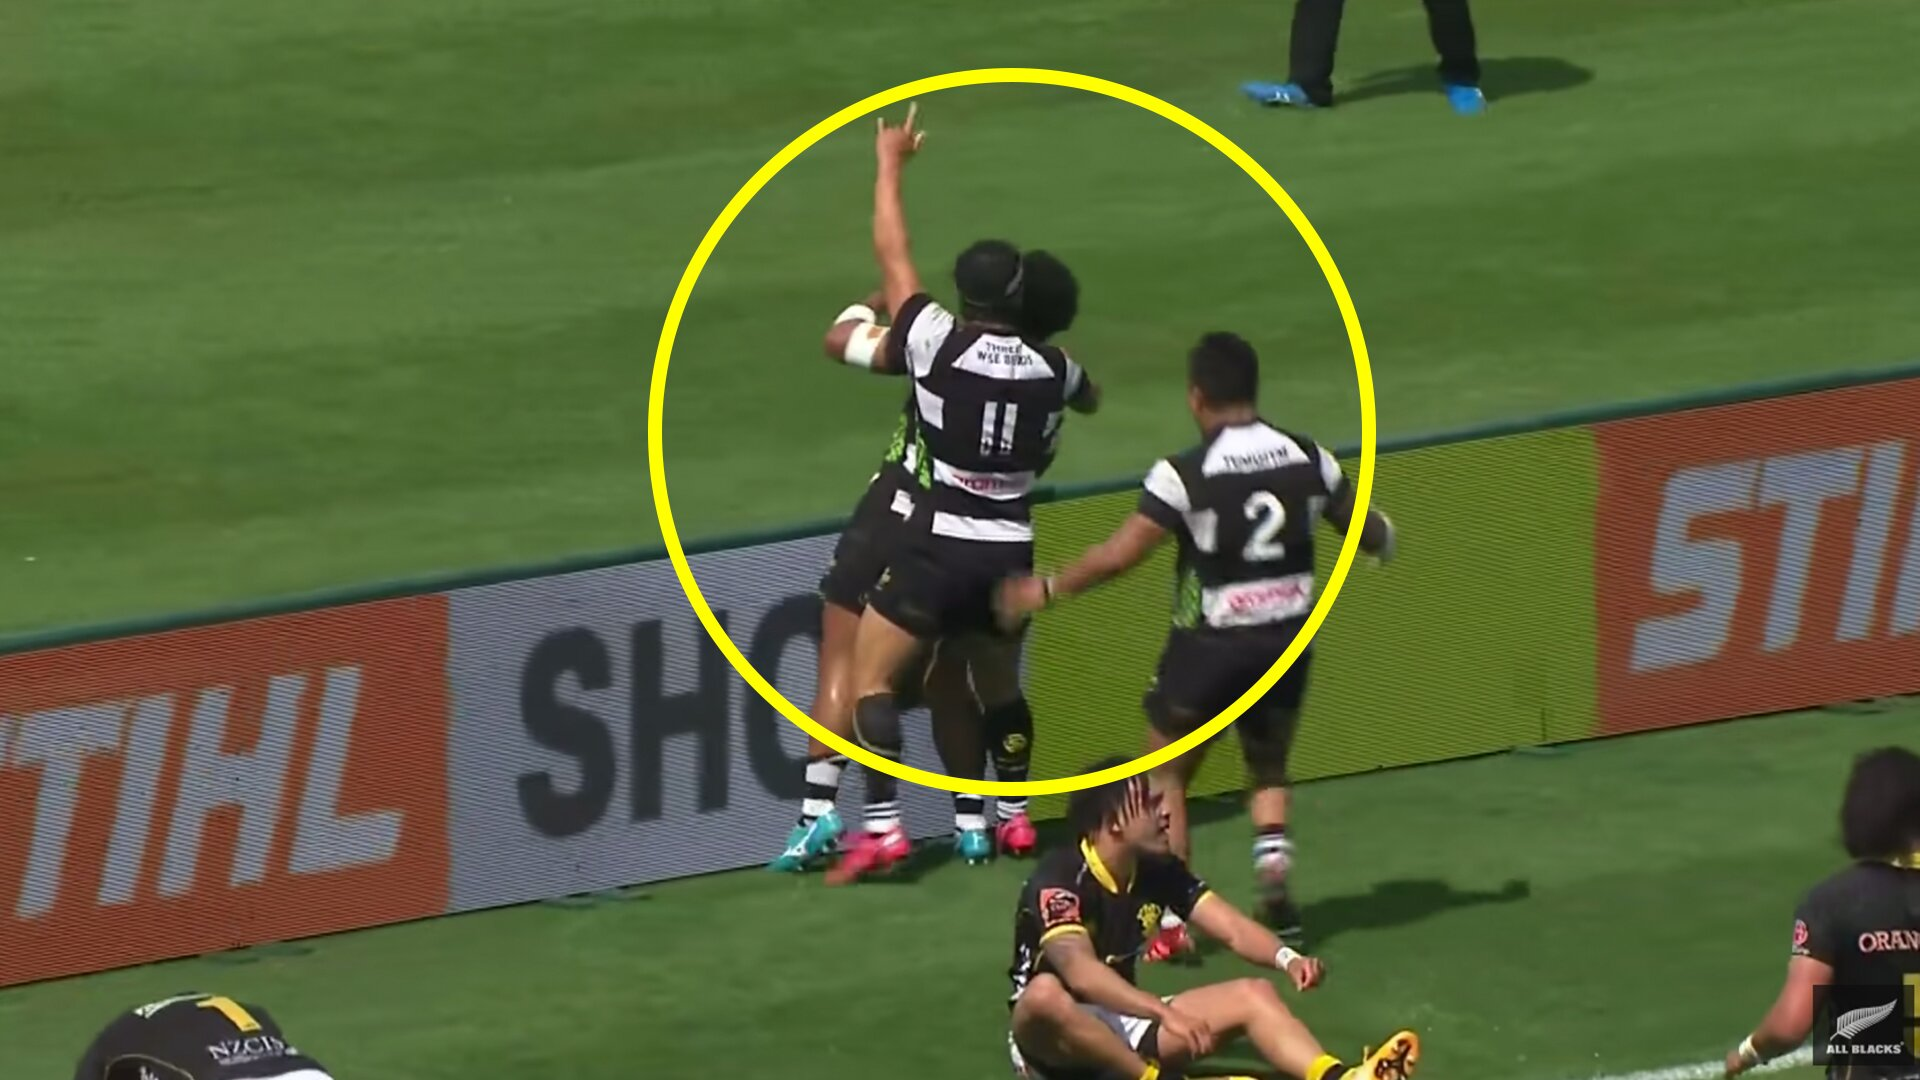 One of the tries of the season was scored in New Zealand this weekend